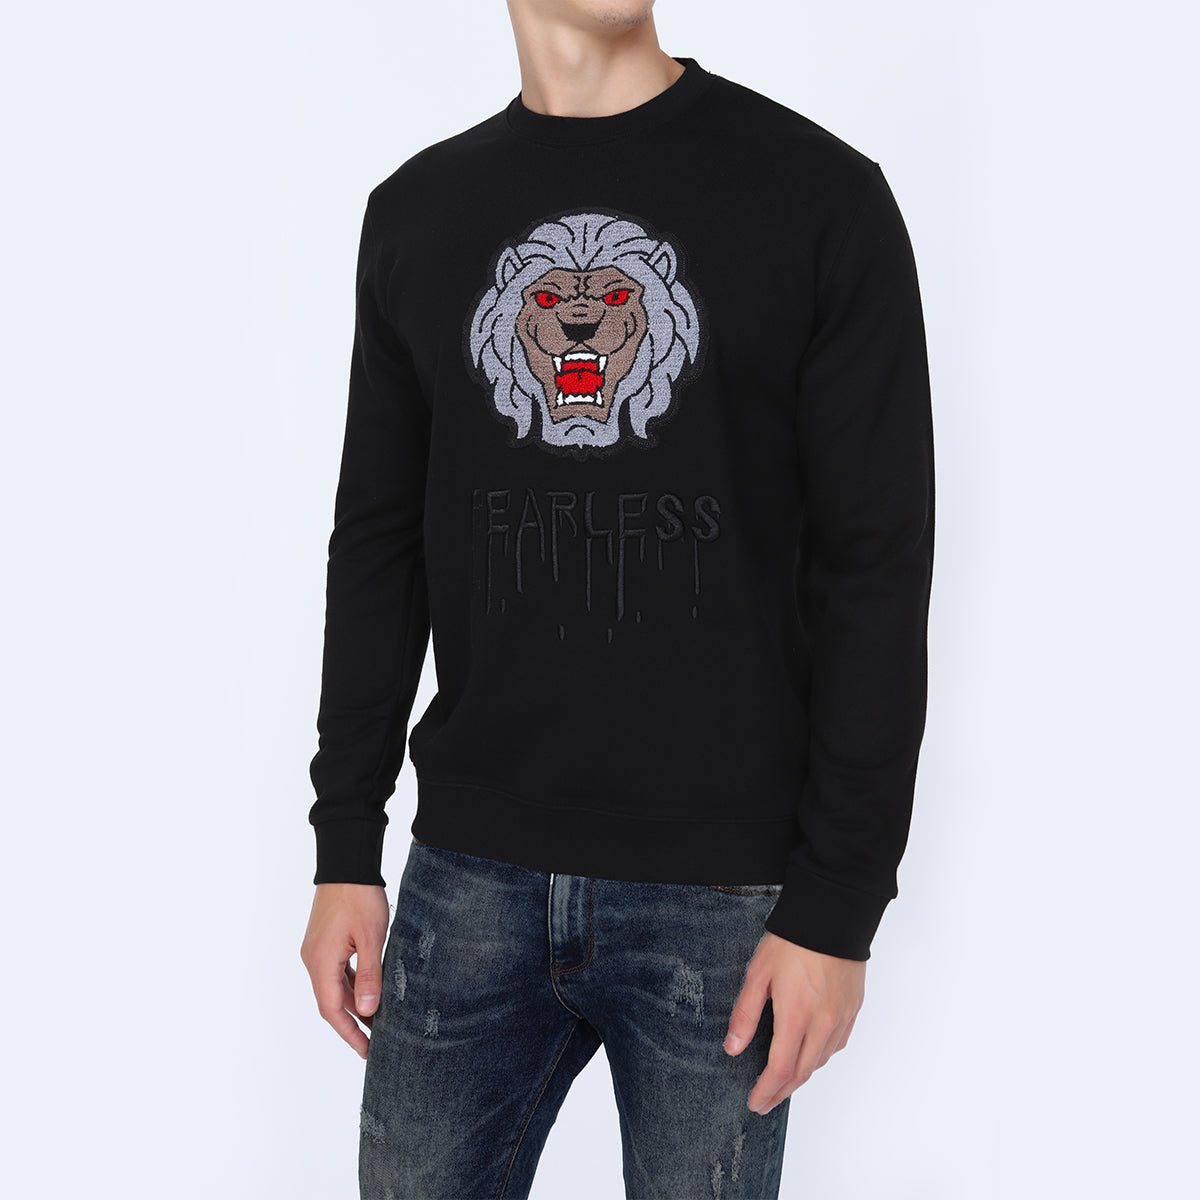 Men's Black Sweatshirt online at best price